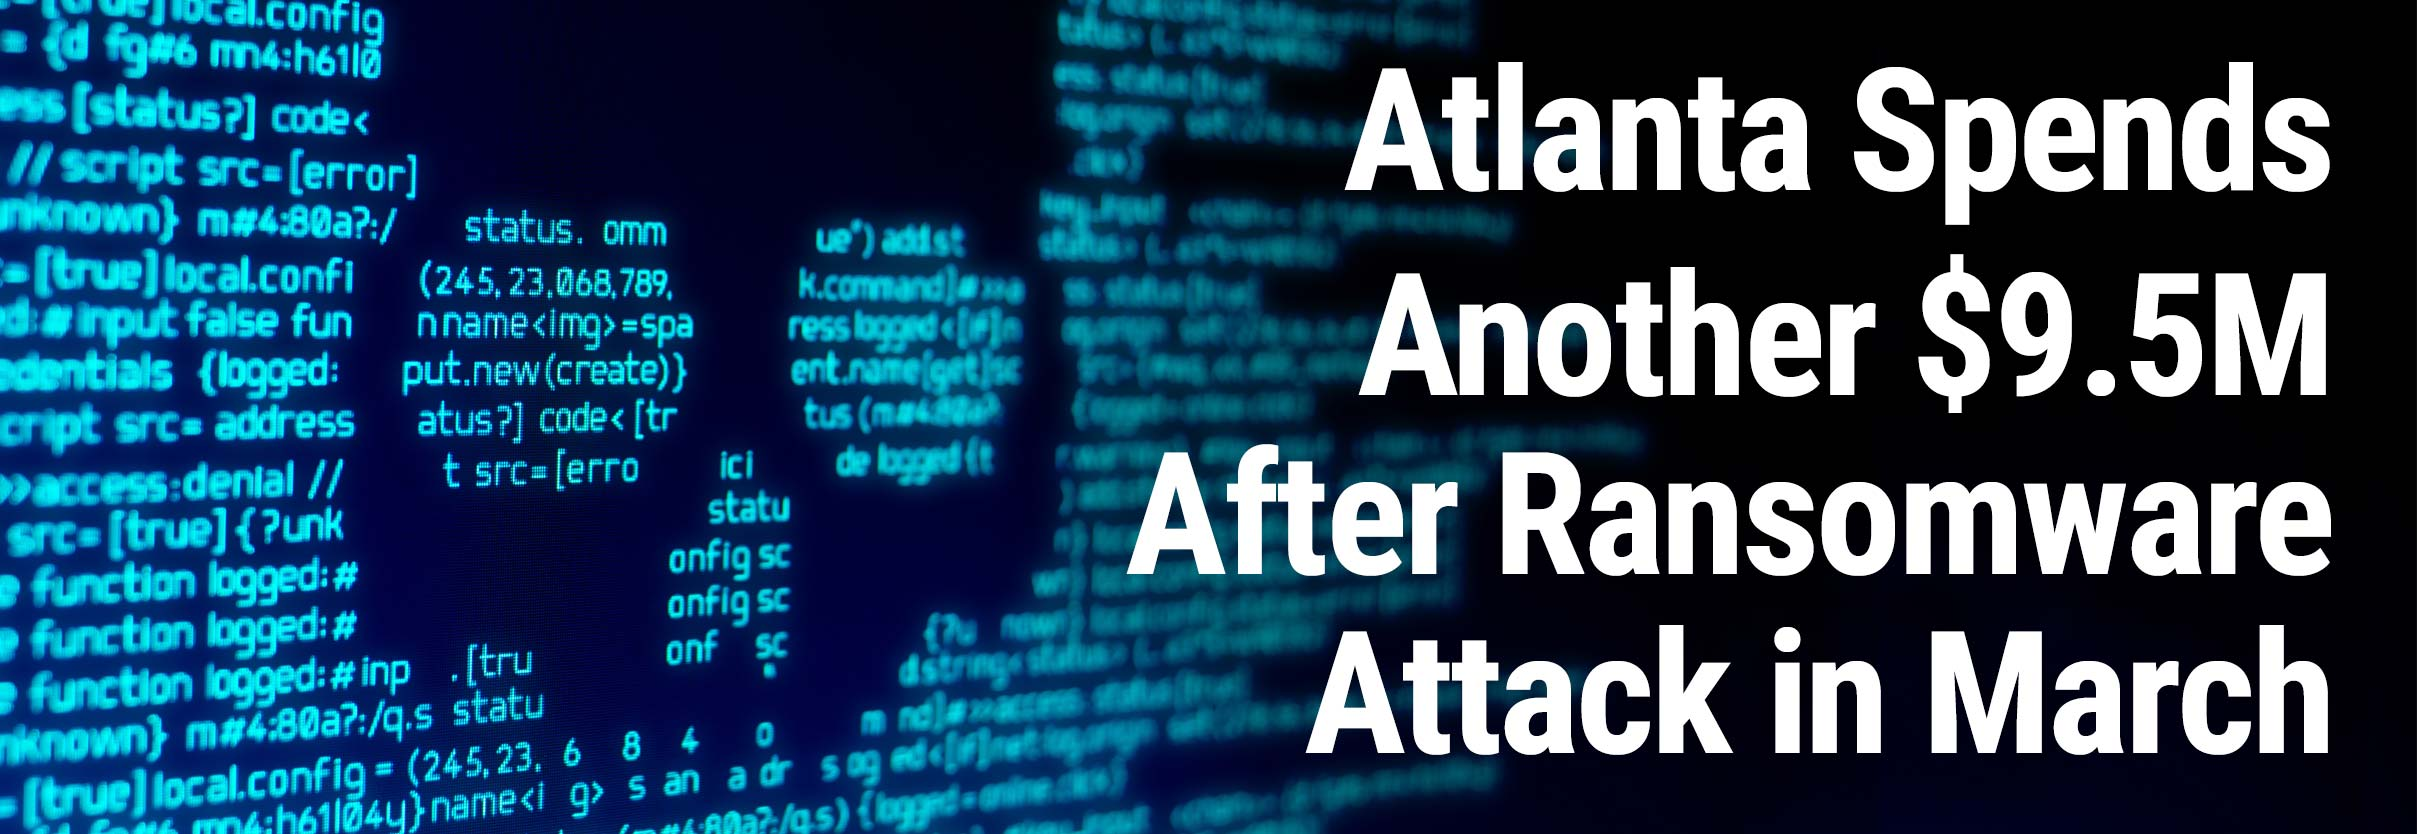 UPDATE: City of Atlanta Spends Another $9.5 Million to Repair Damage Caused by Ransomware Attack in March